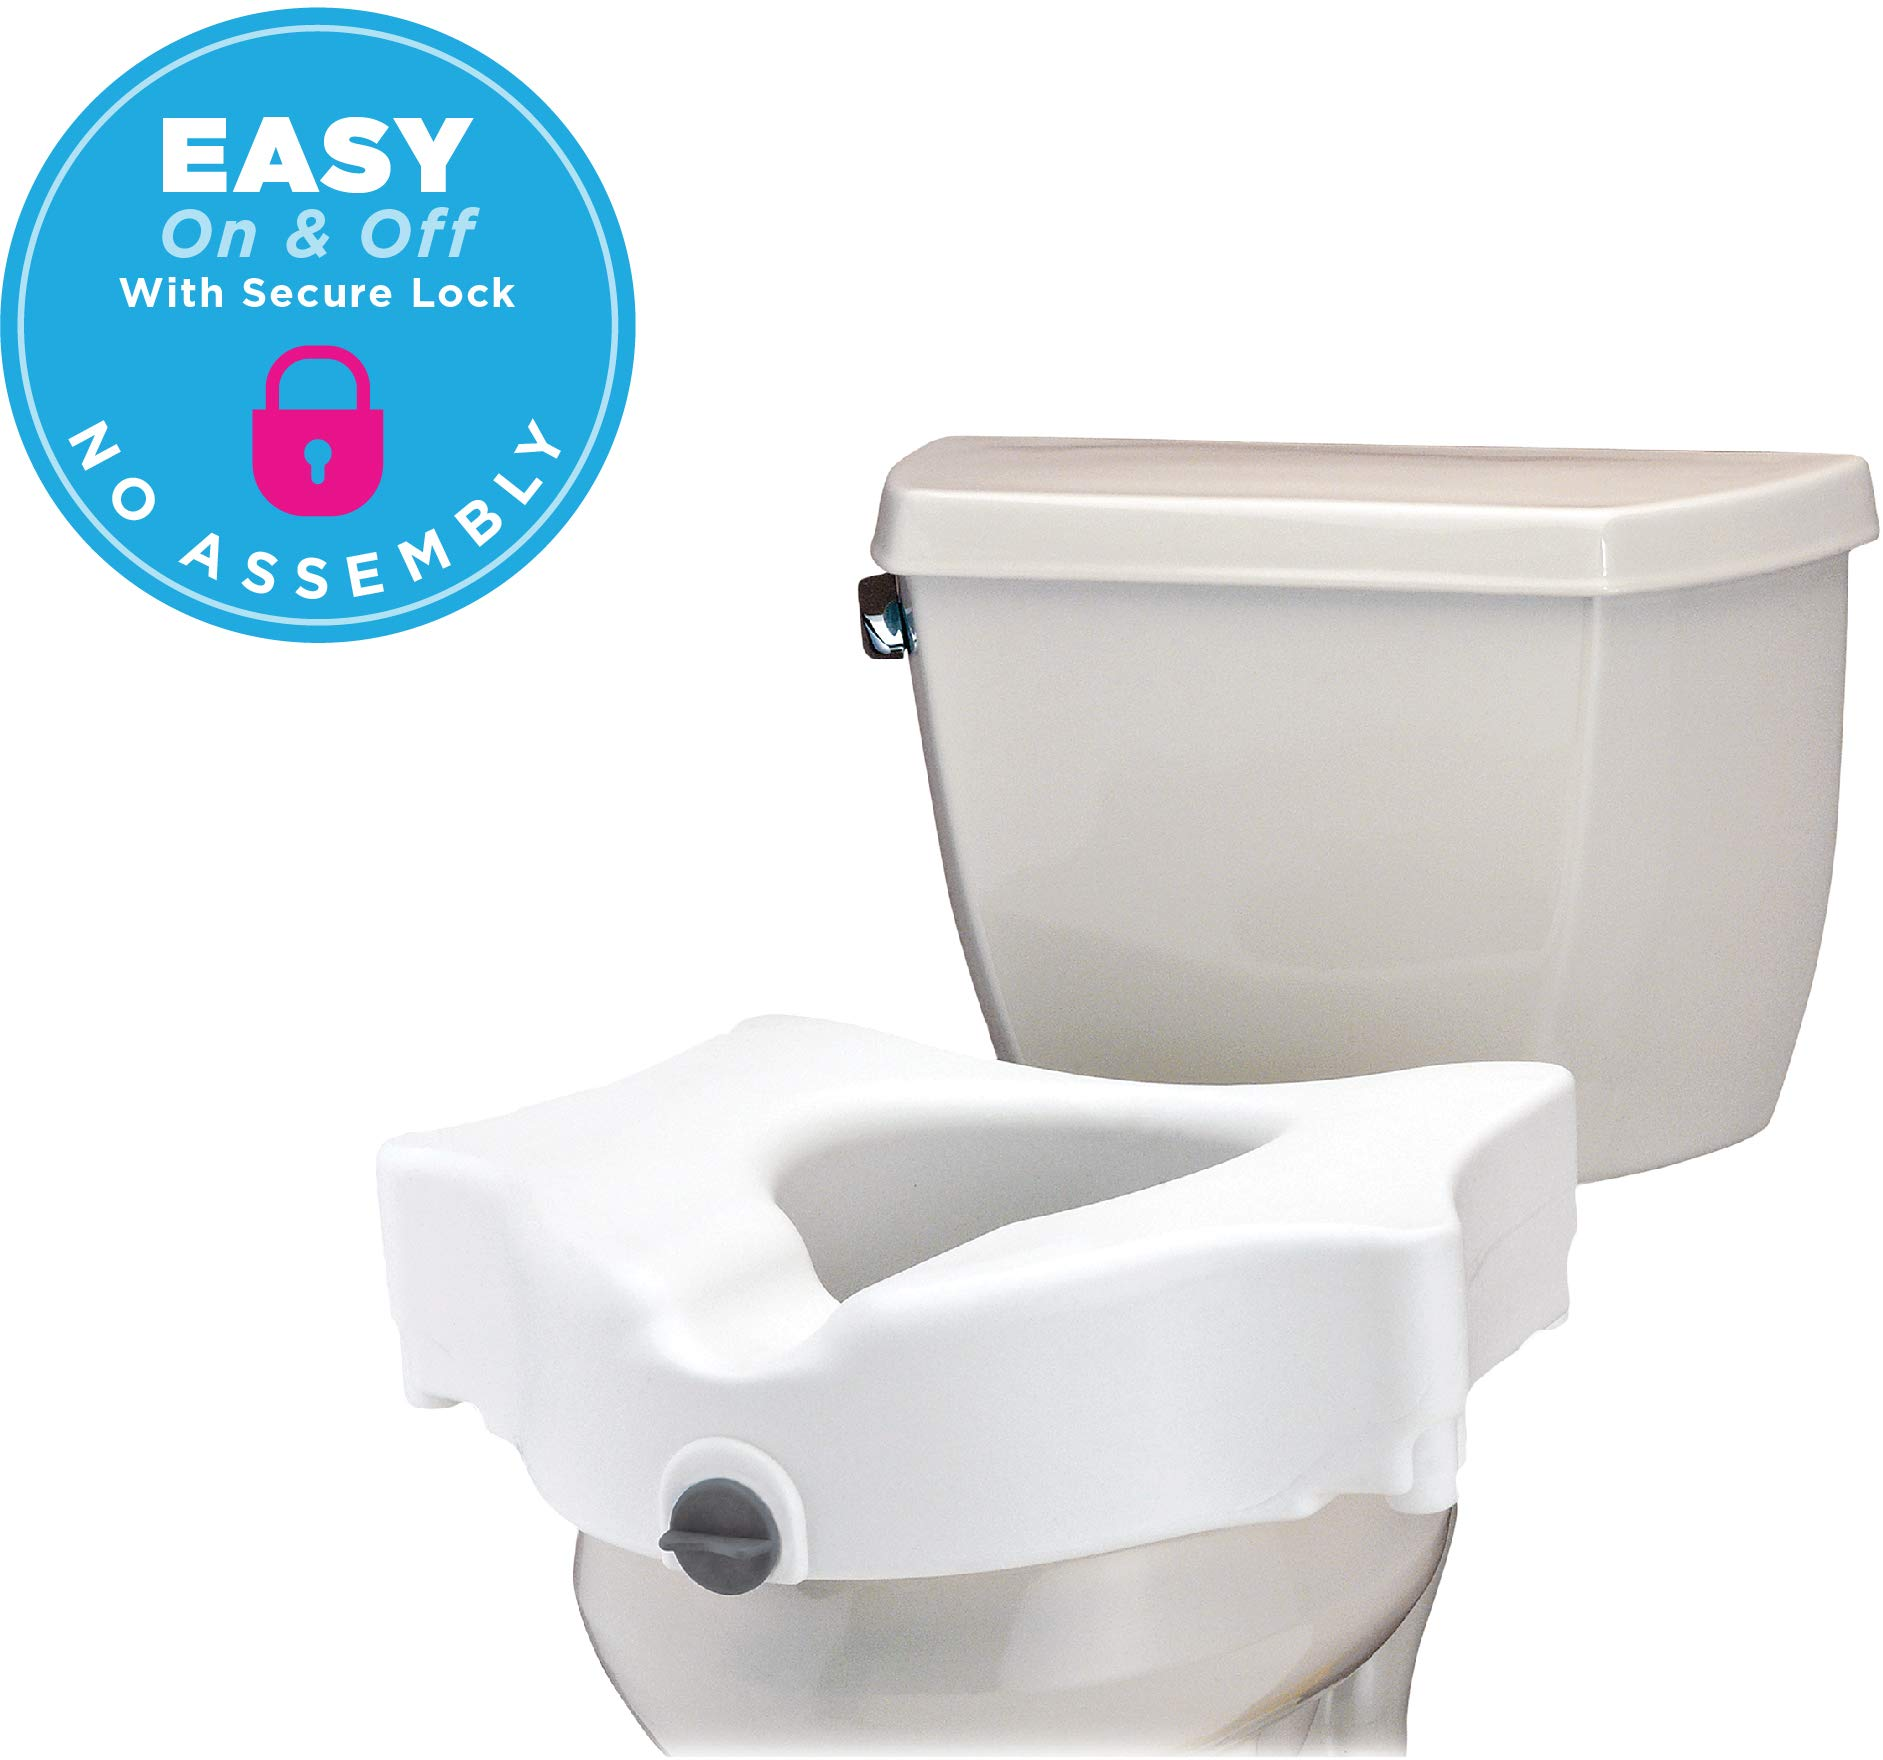 NOVA Elevated Raised Toilet Seat, Locking Easy On and Off, for Standard and Elongated Toilets by NOVA Medical Products